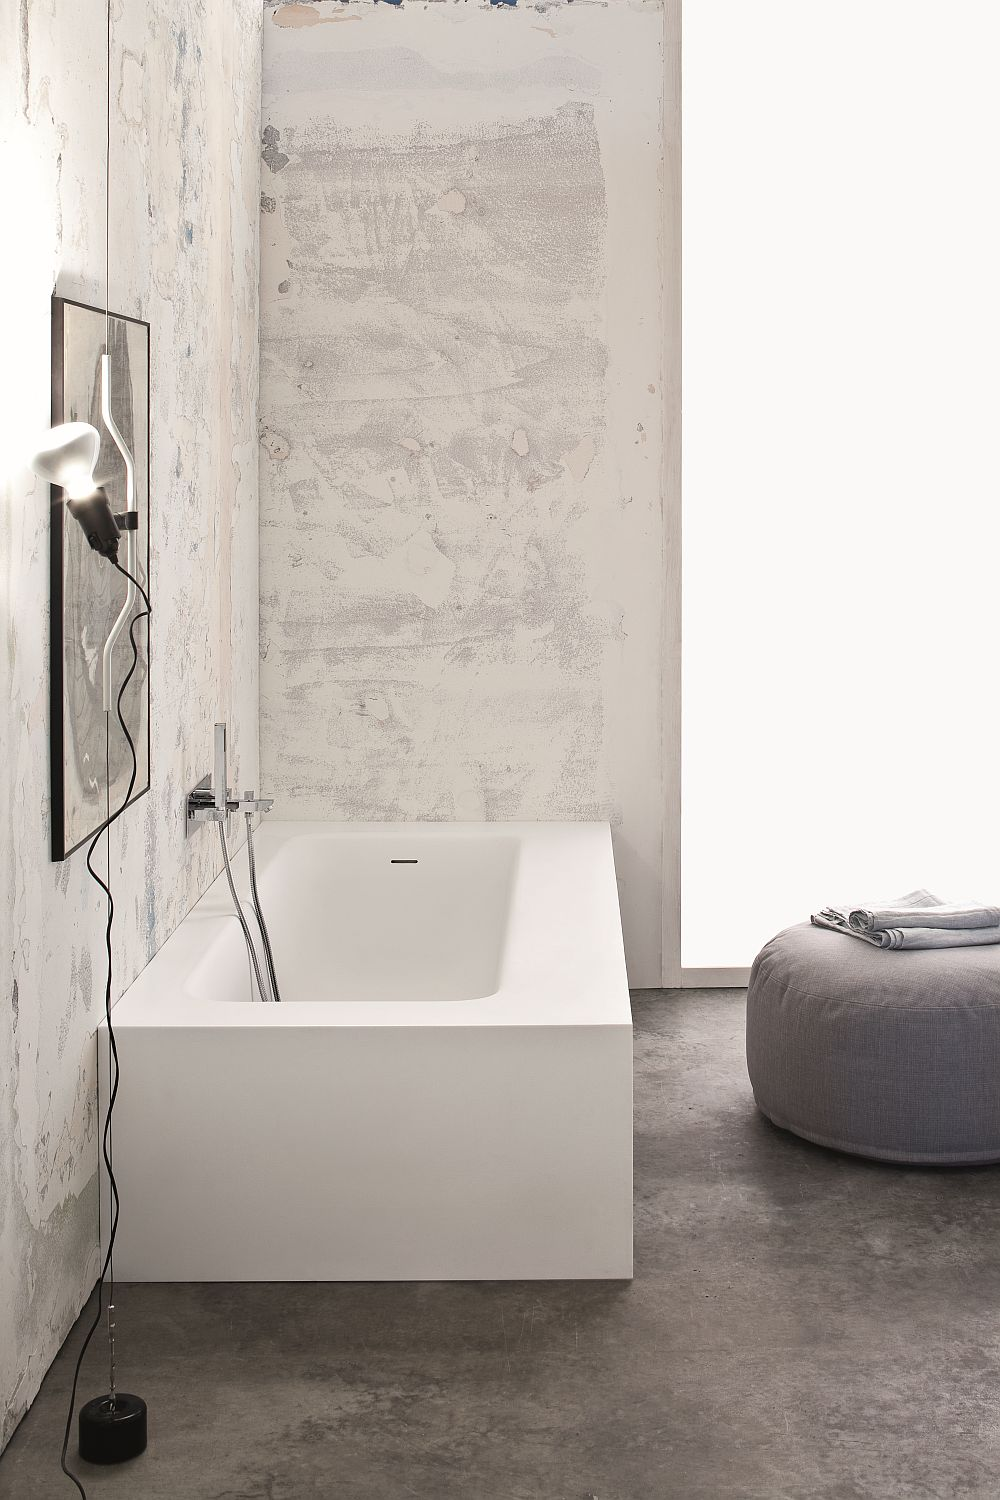 Stylish bathtub in white that is wall-fitted